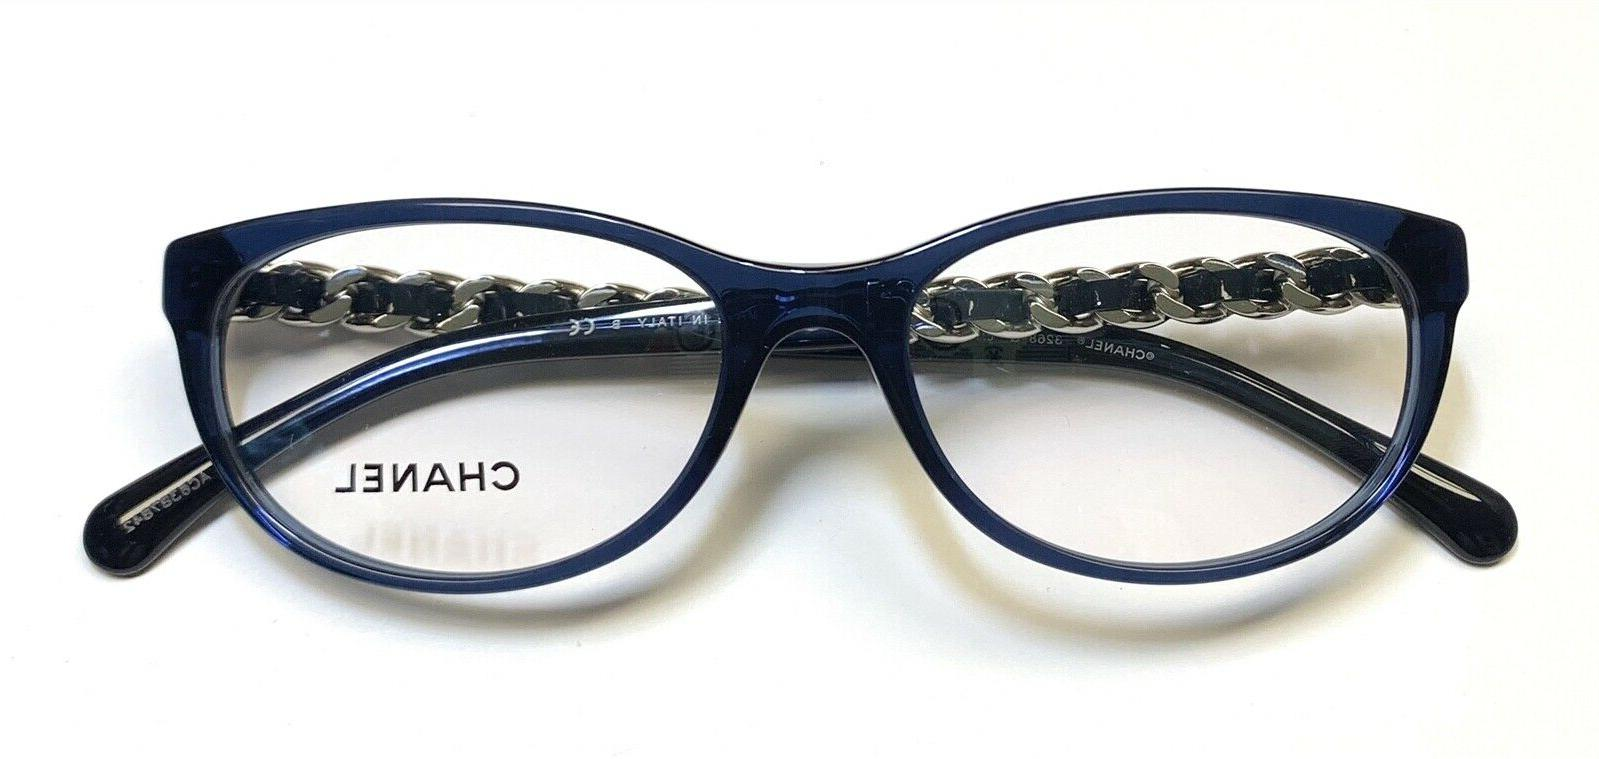 CHANEL Frame Glasses Blue & Logo